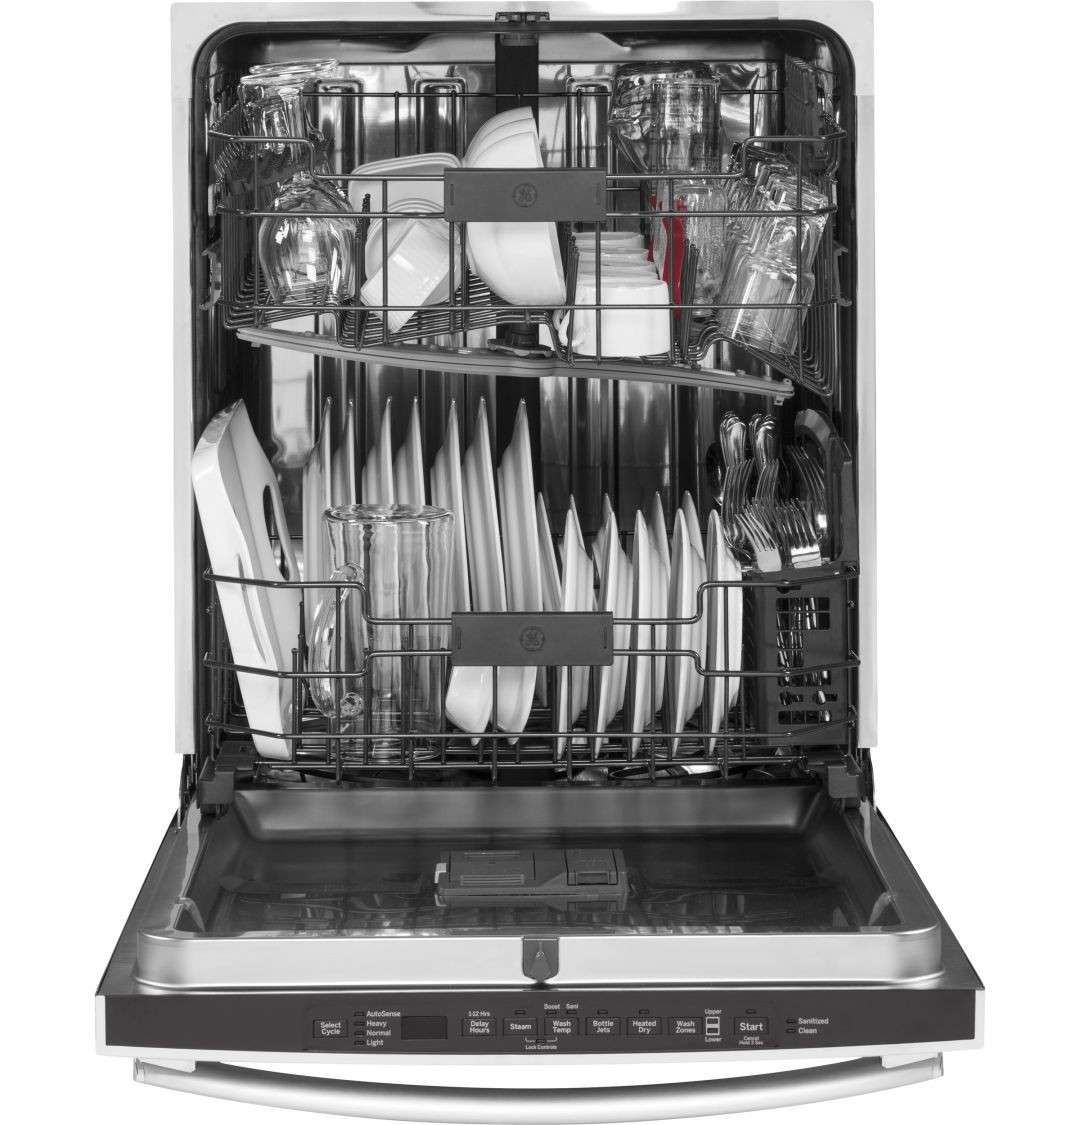 Ge Gdt655ssjss Built In Dishwasher Steel Tub Stainless Steel